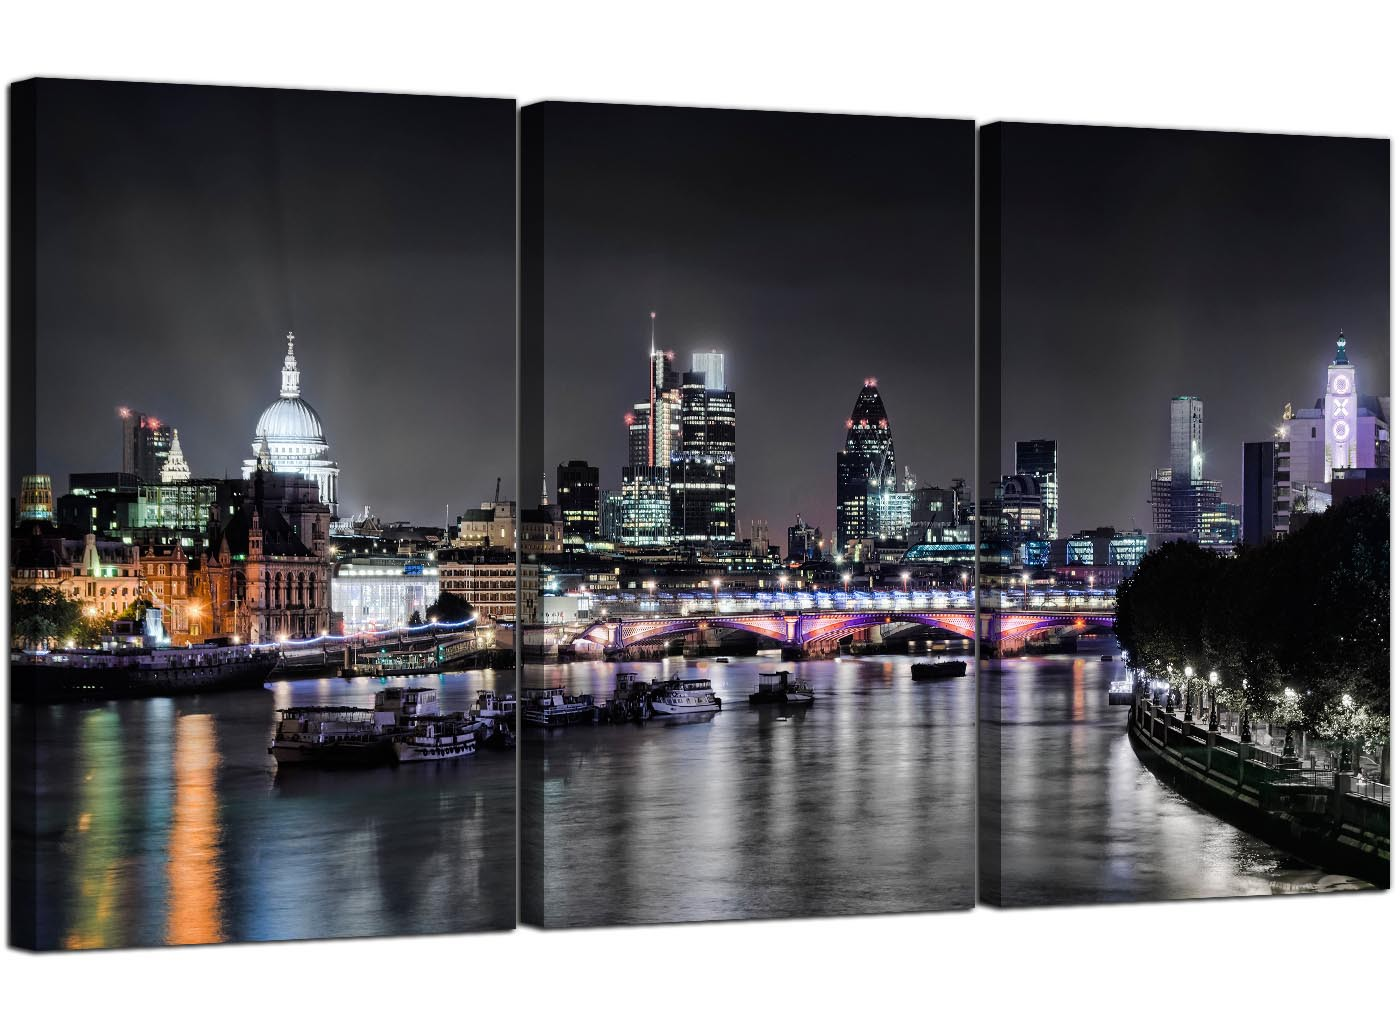 Large Wall Art For Living Room Cheap London Skyline At Night Canvas Art 3 Panel For Your